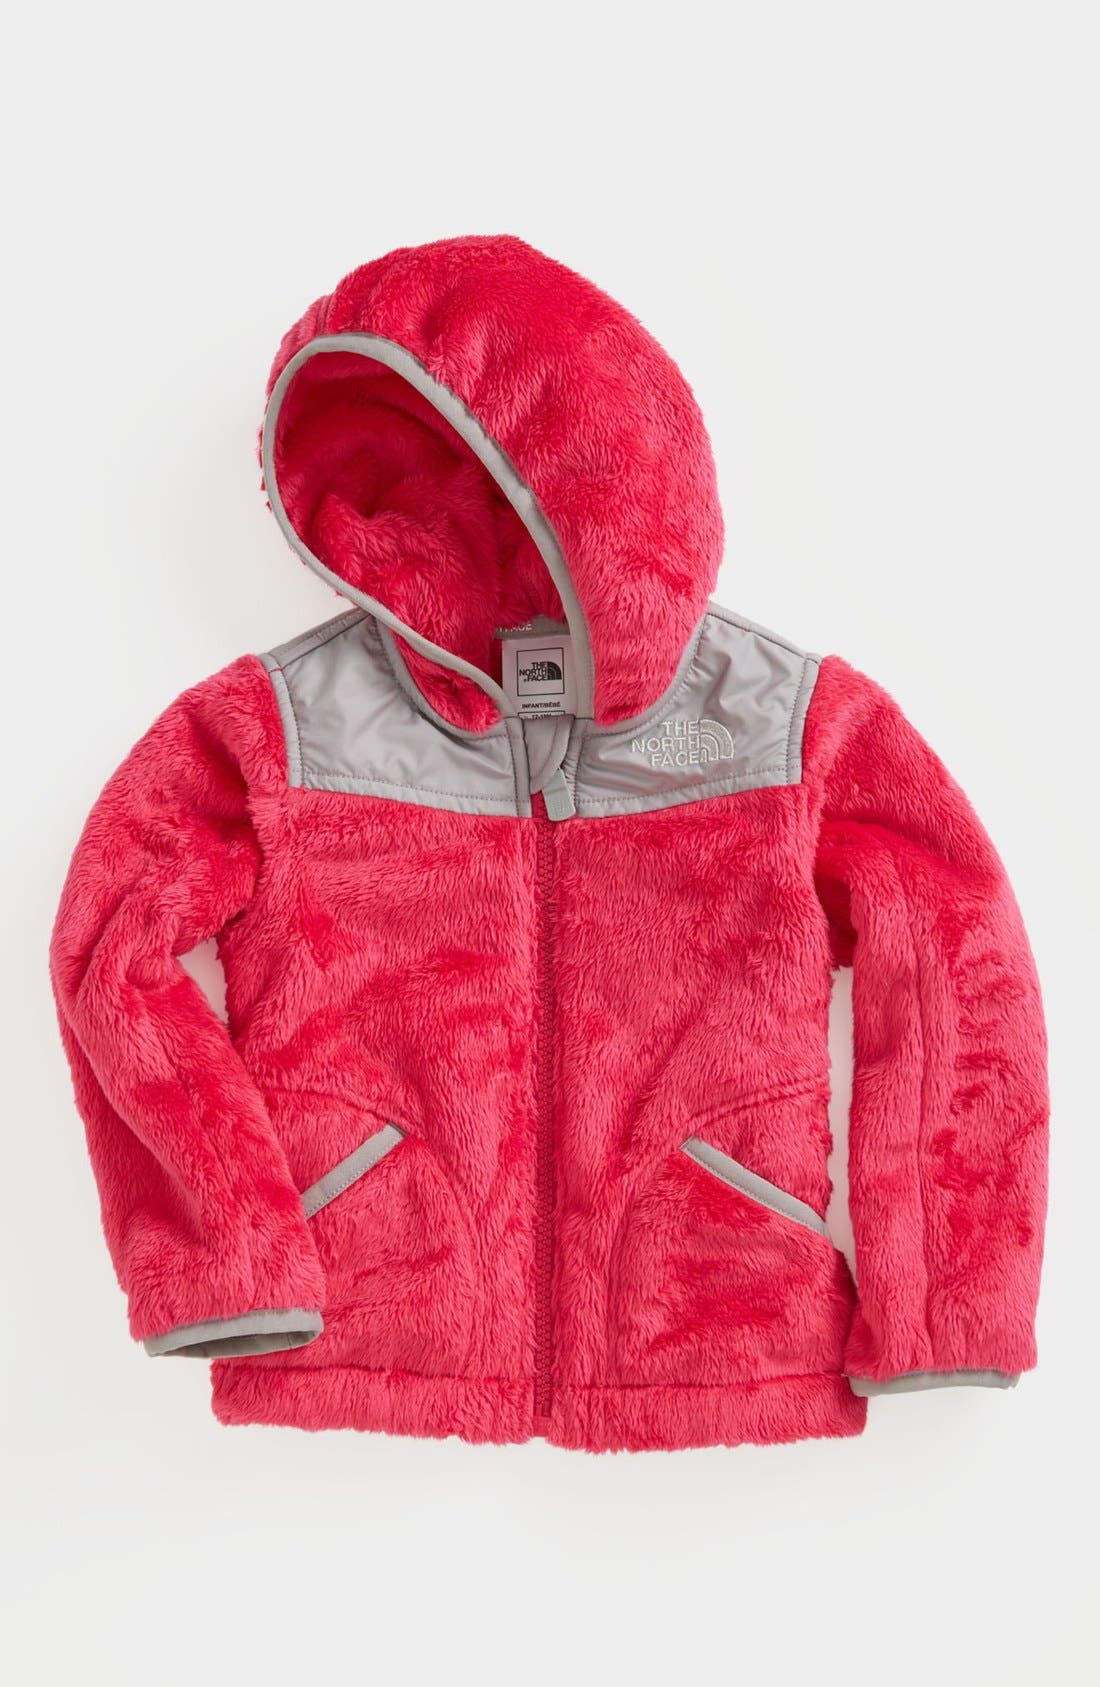 Main Image - The North Face 'Oso' Hooded Fleece Jacket (Toddler Girls)